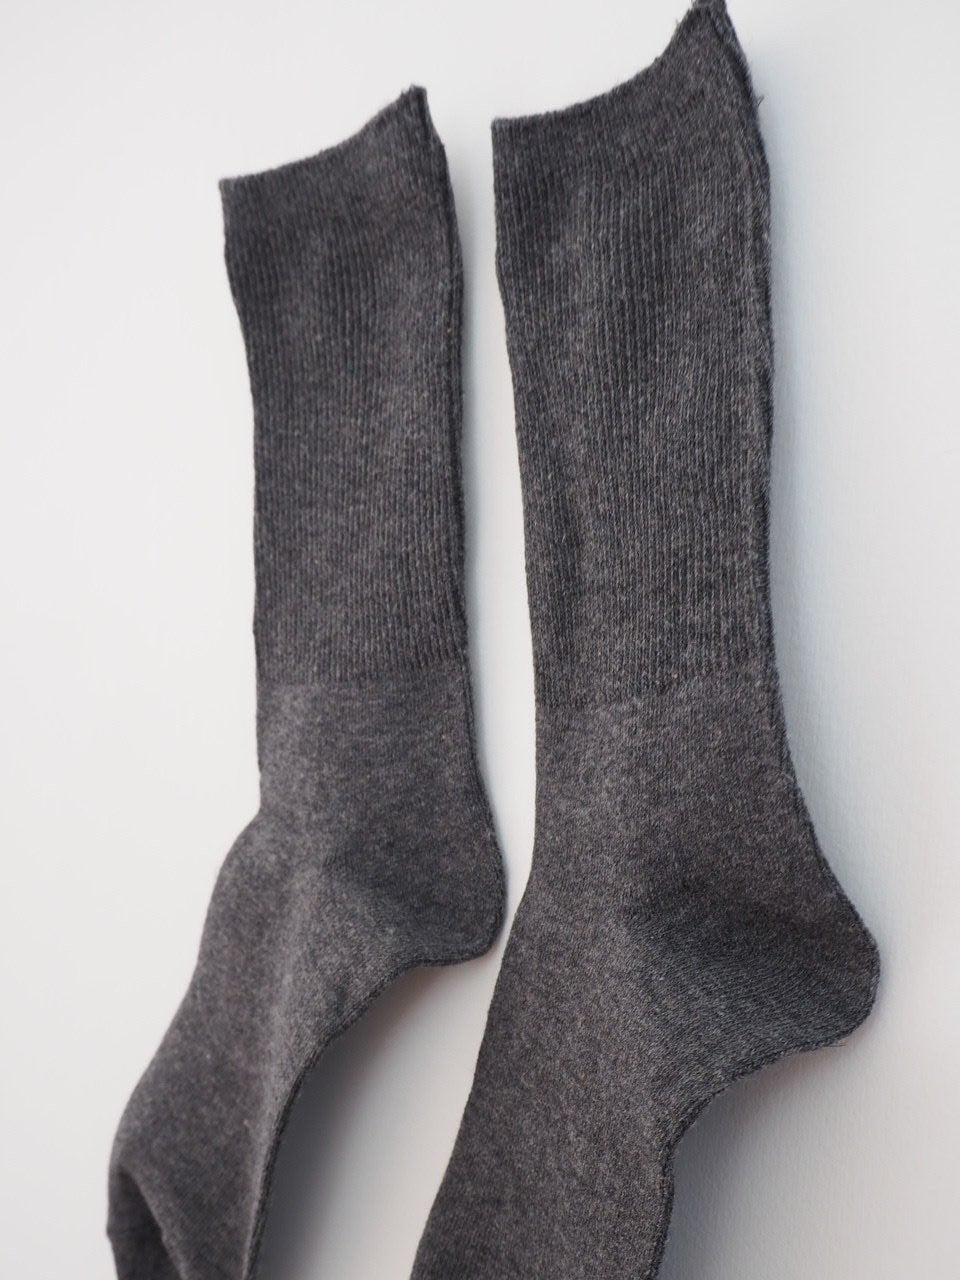 Ribbed Socks – Tea Tree